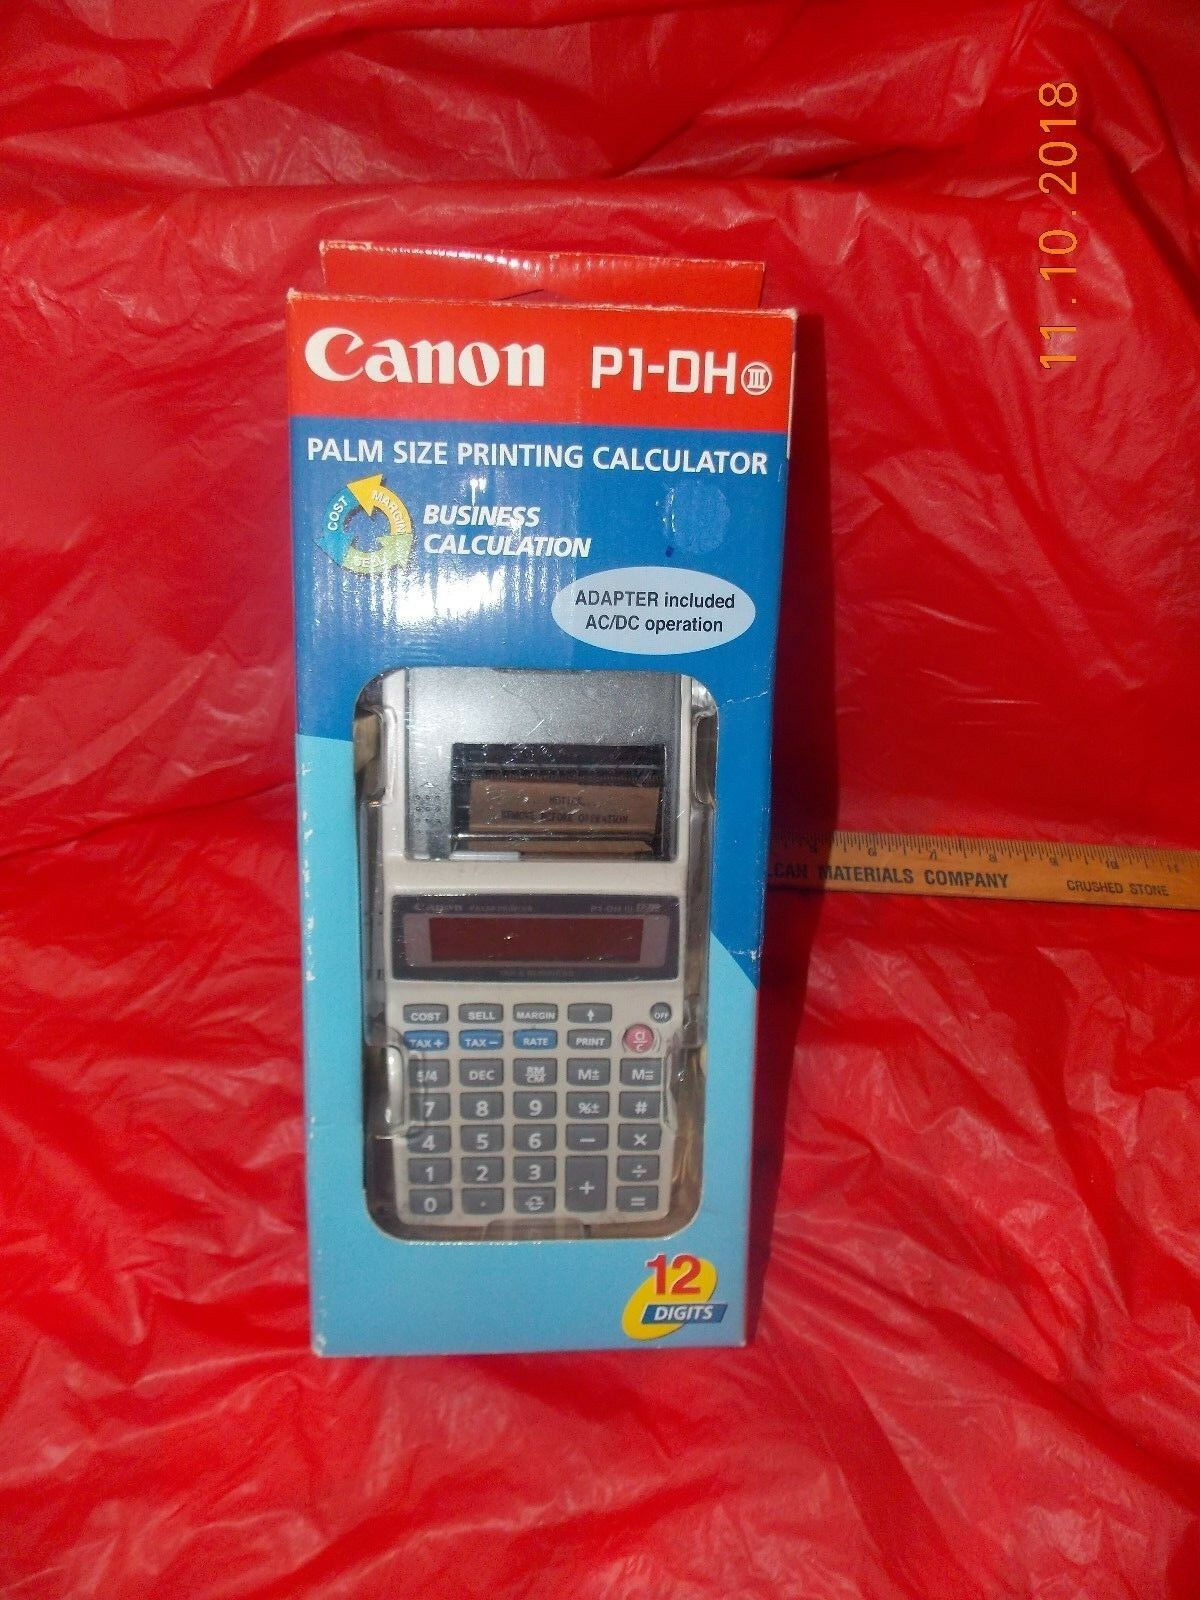 Canon P1-DH lll 3 Palm Sized Printing Calculator - Brand New